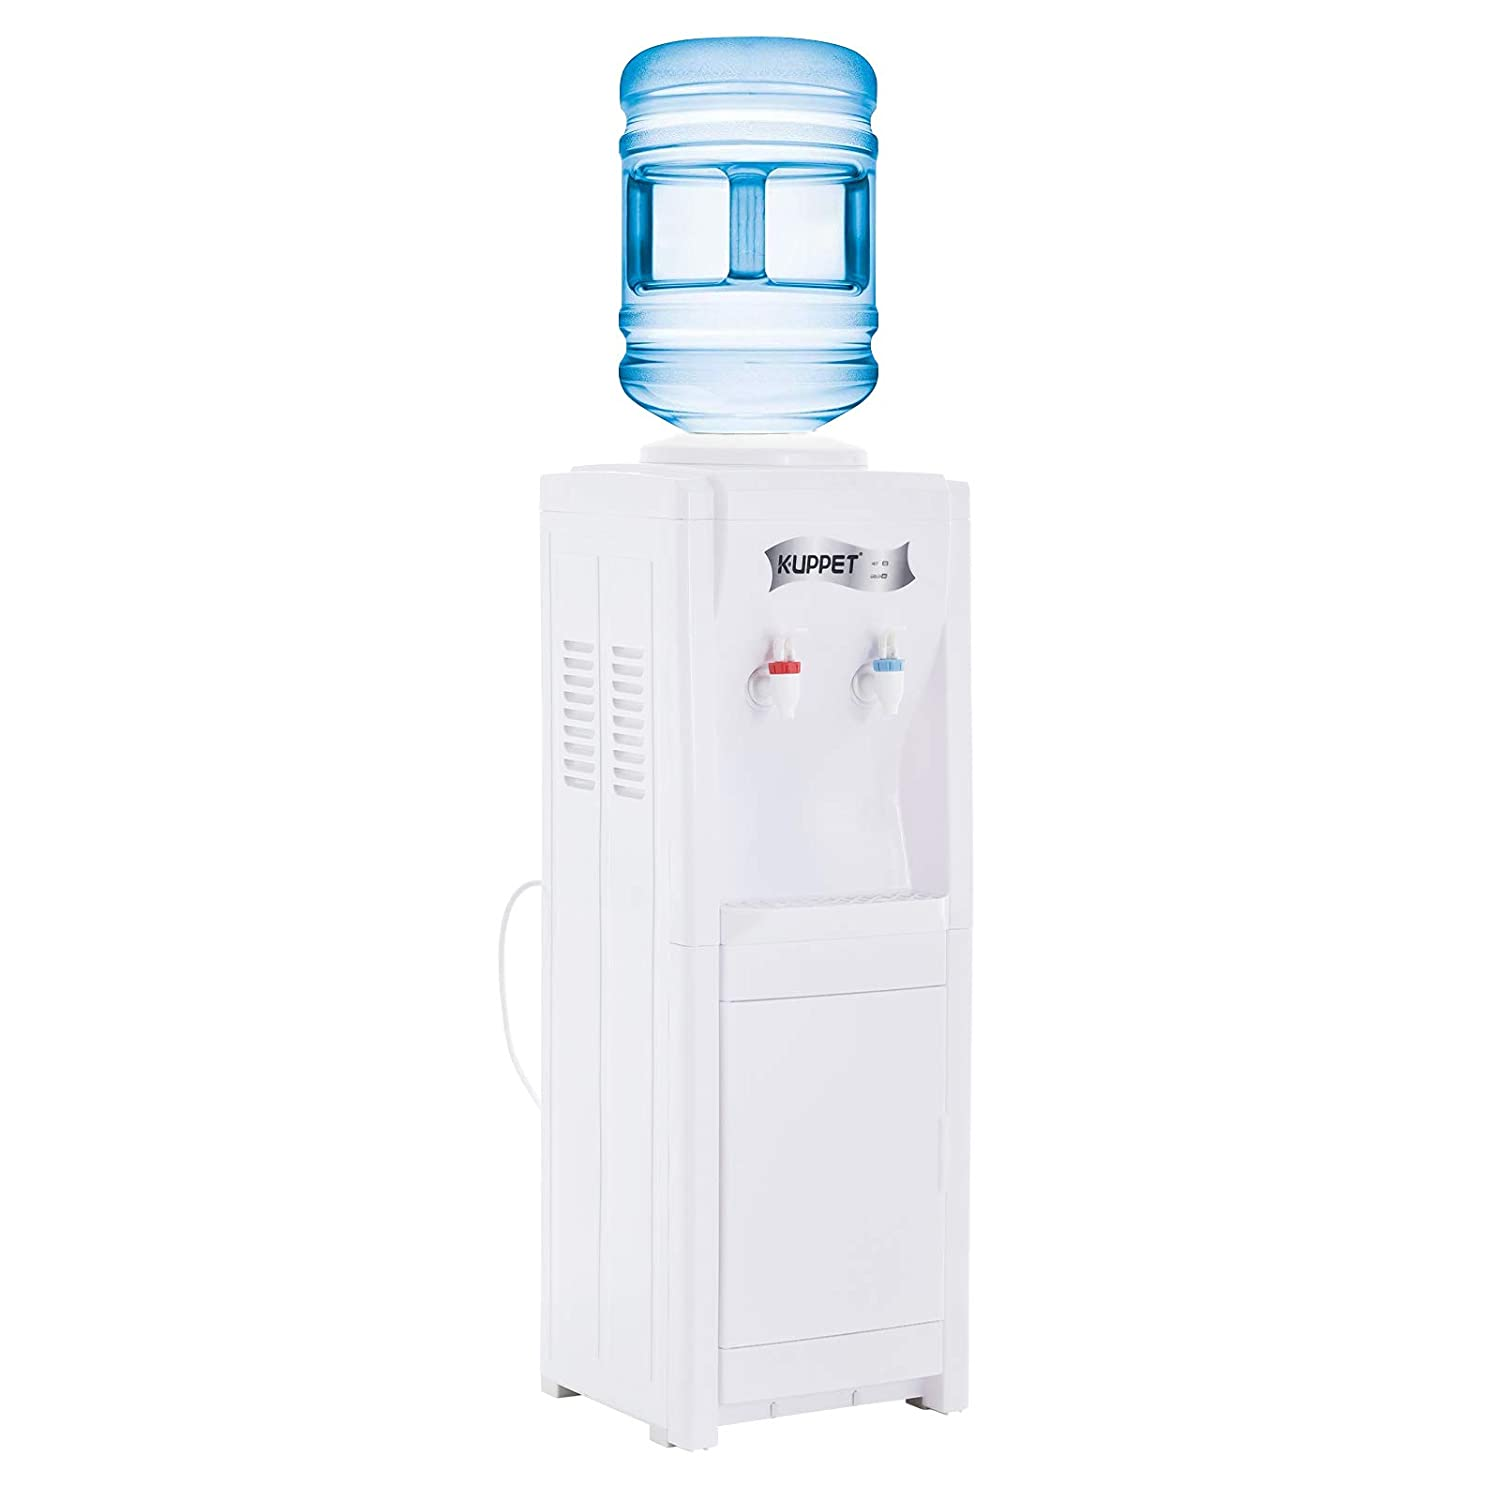 KUPPET Water Dispenser Top Loading Freestanding With Storage Cabinet, Water Coolers, Two Temperature, Hot(185℉-203℉), Normal Temperature(50℉-59℉),3-5 Gallon (32'', White)